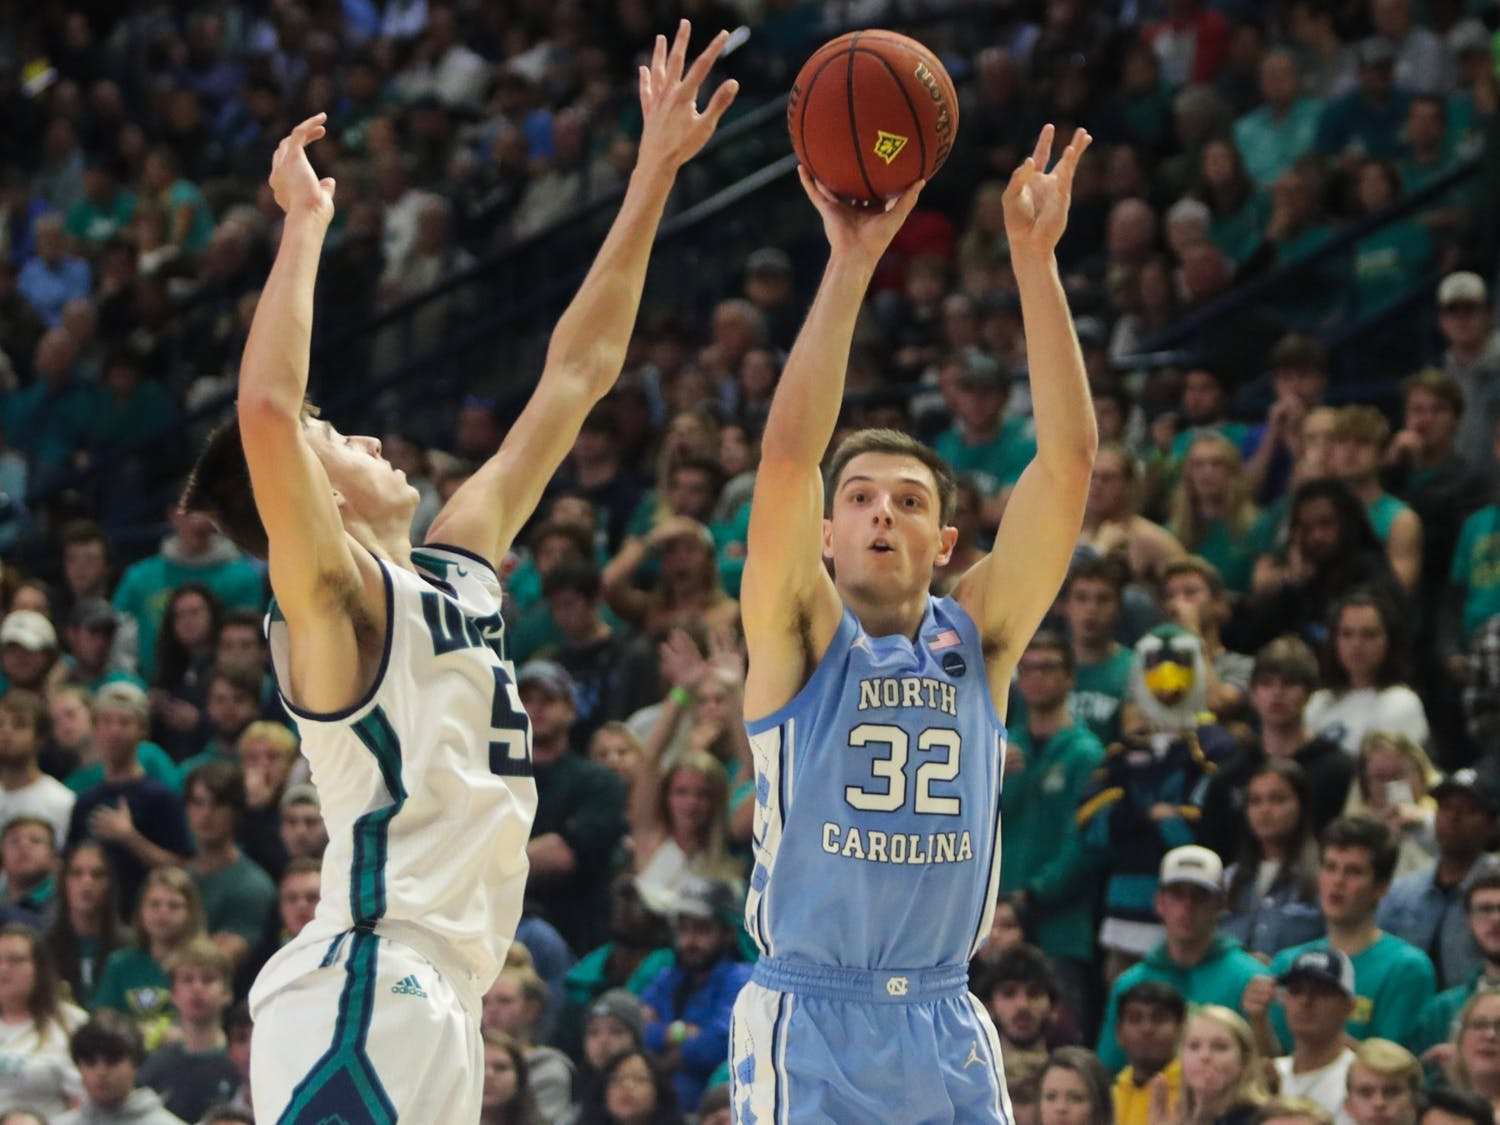 WCU freshman guard Jake Boggs (5) attempts to block as UNC graduate forward Justin Pierce (32) shoots the ball during their game at Trask Coliseum on Friday, Nov. 8, 2019. The Tar Heels beat the Seahawks 78-62.